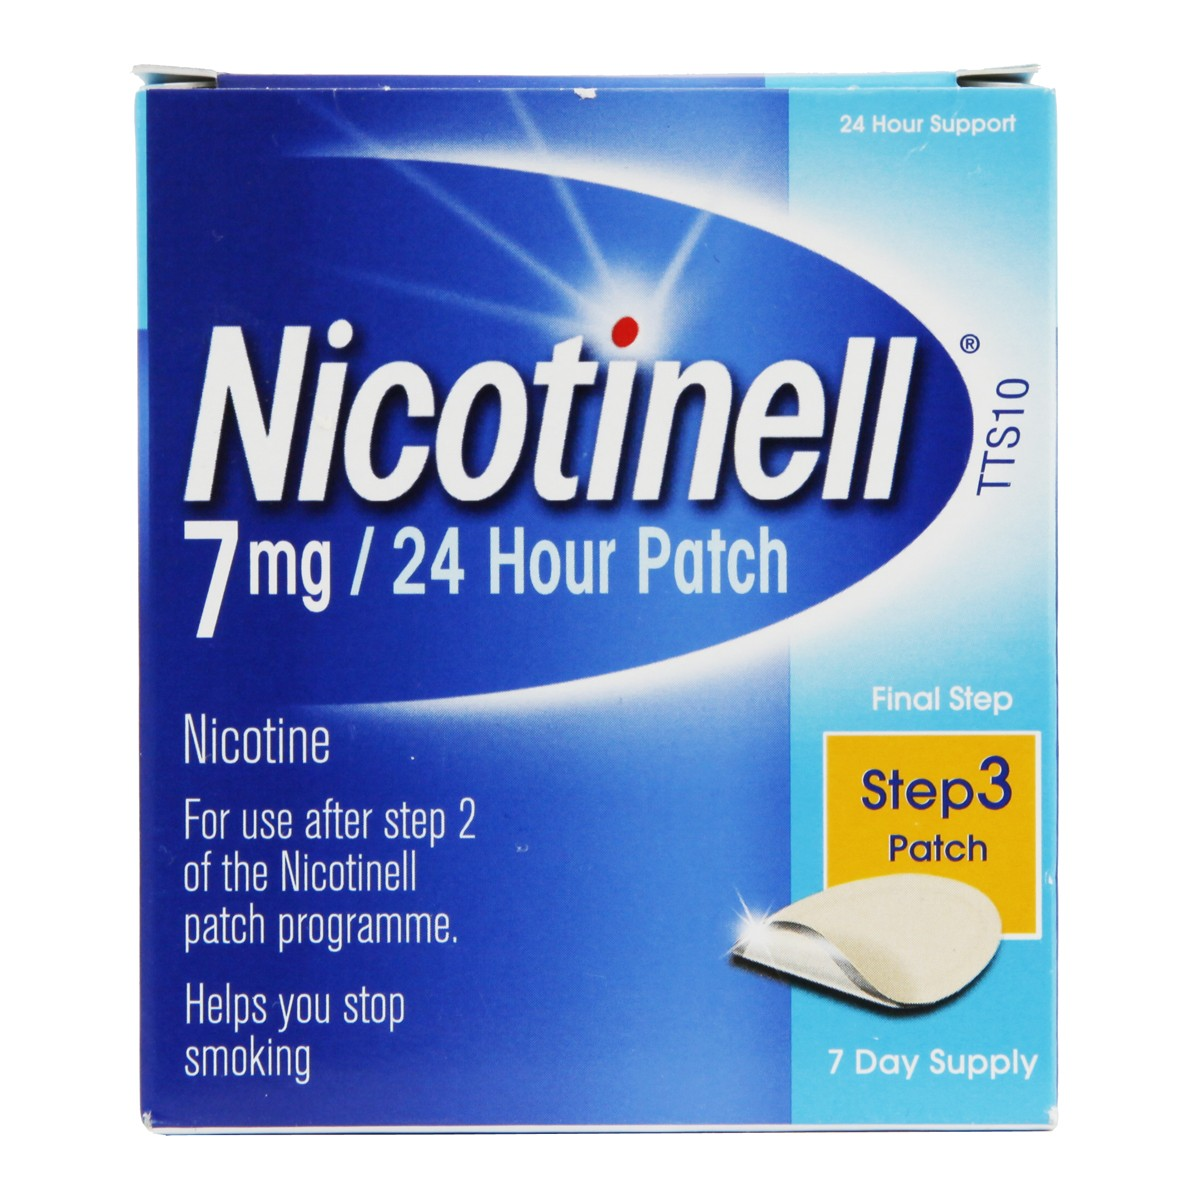 Nicotinell 24 Hour Patch Step 3 - 7mg